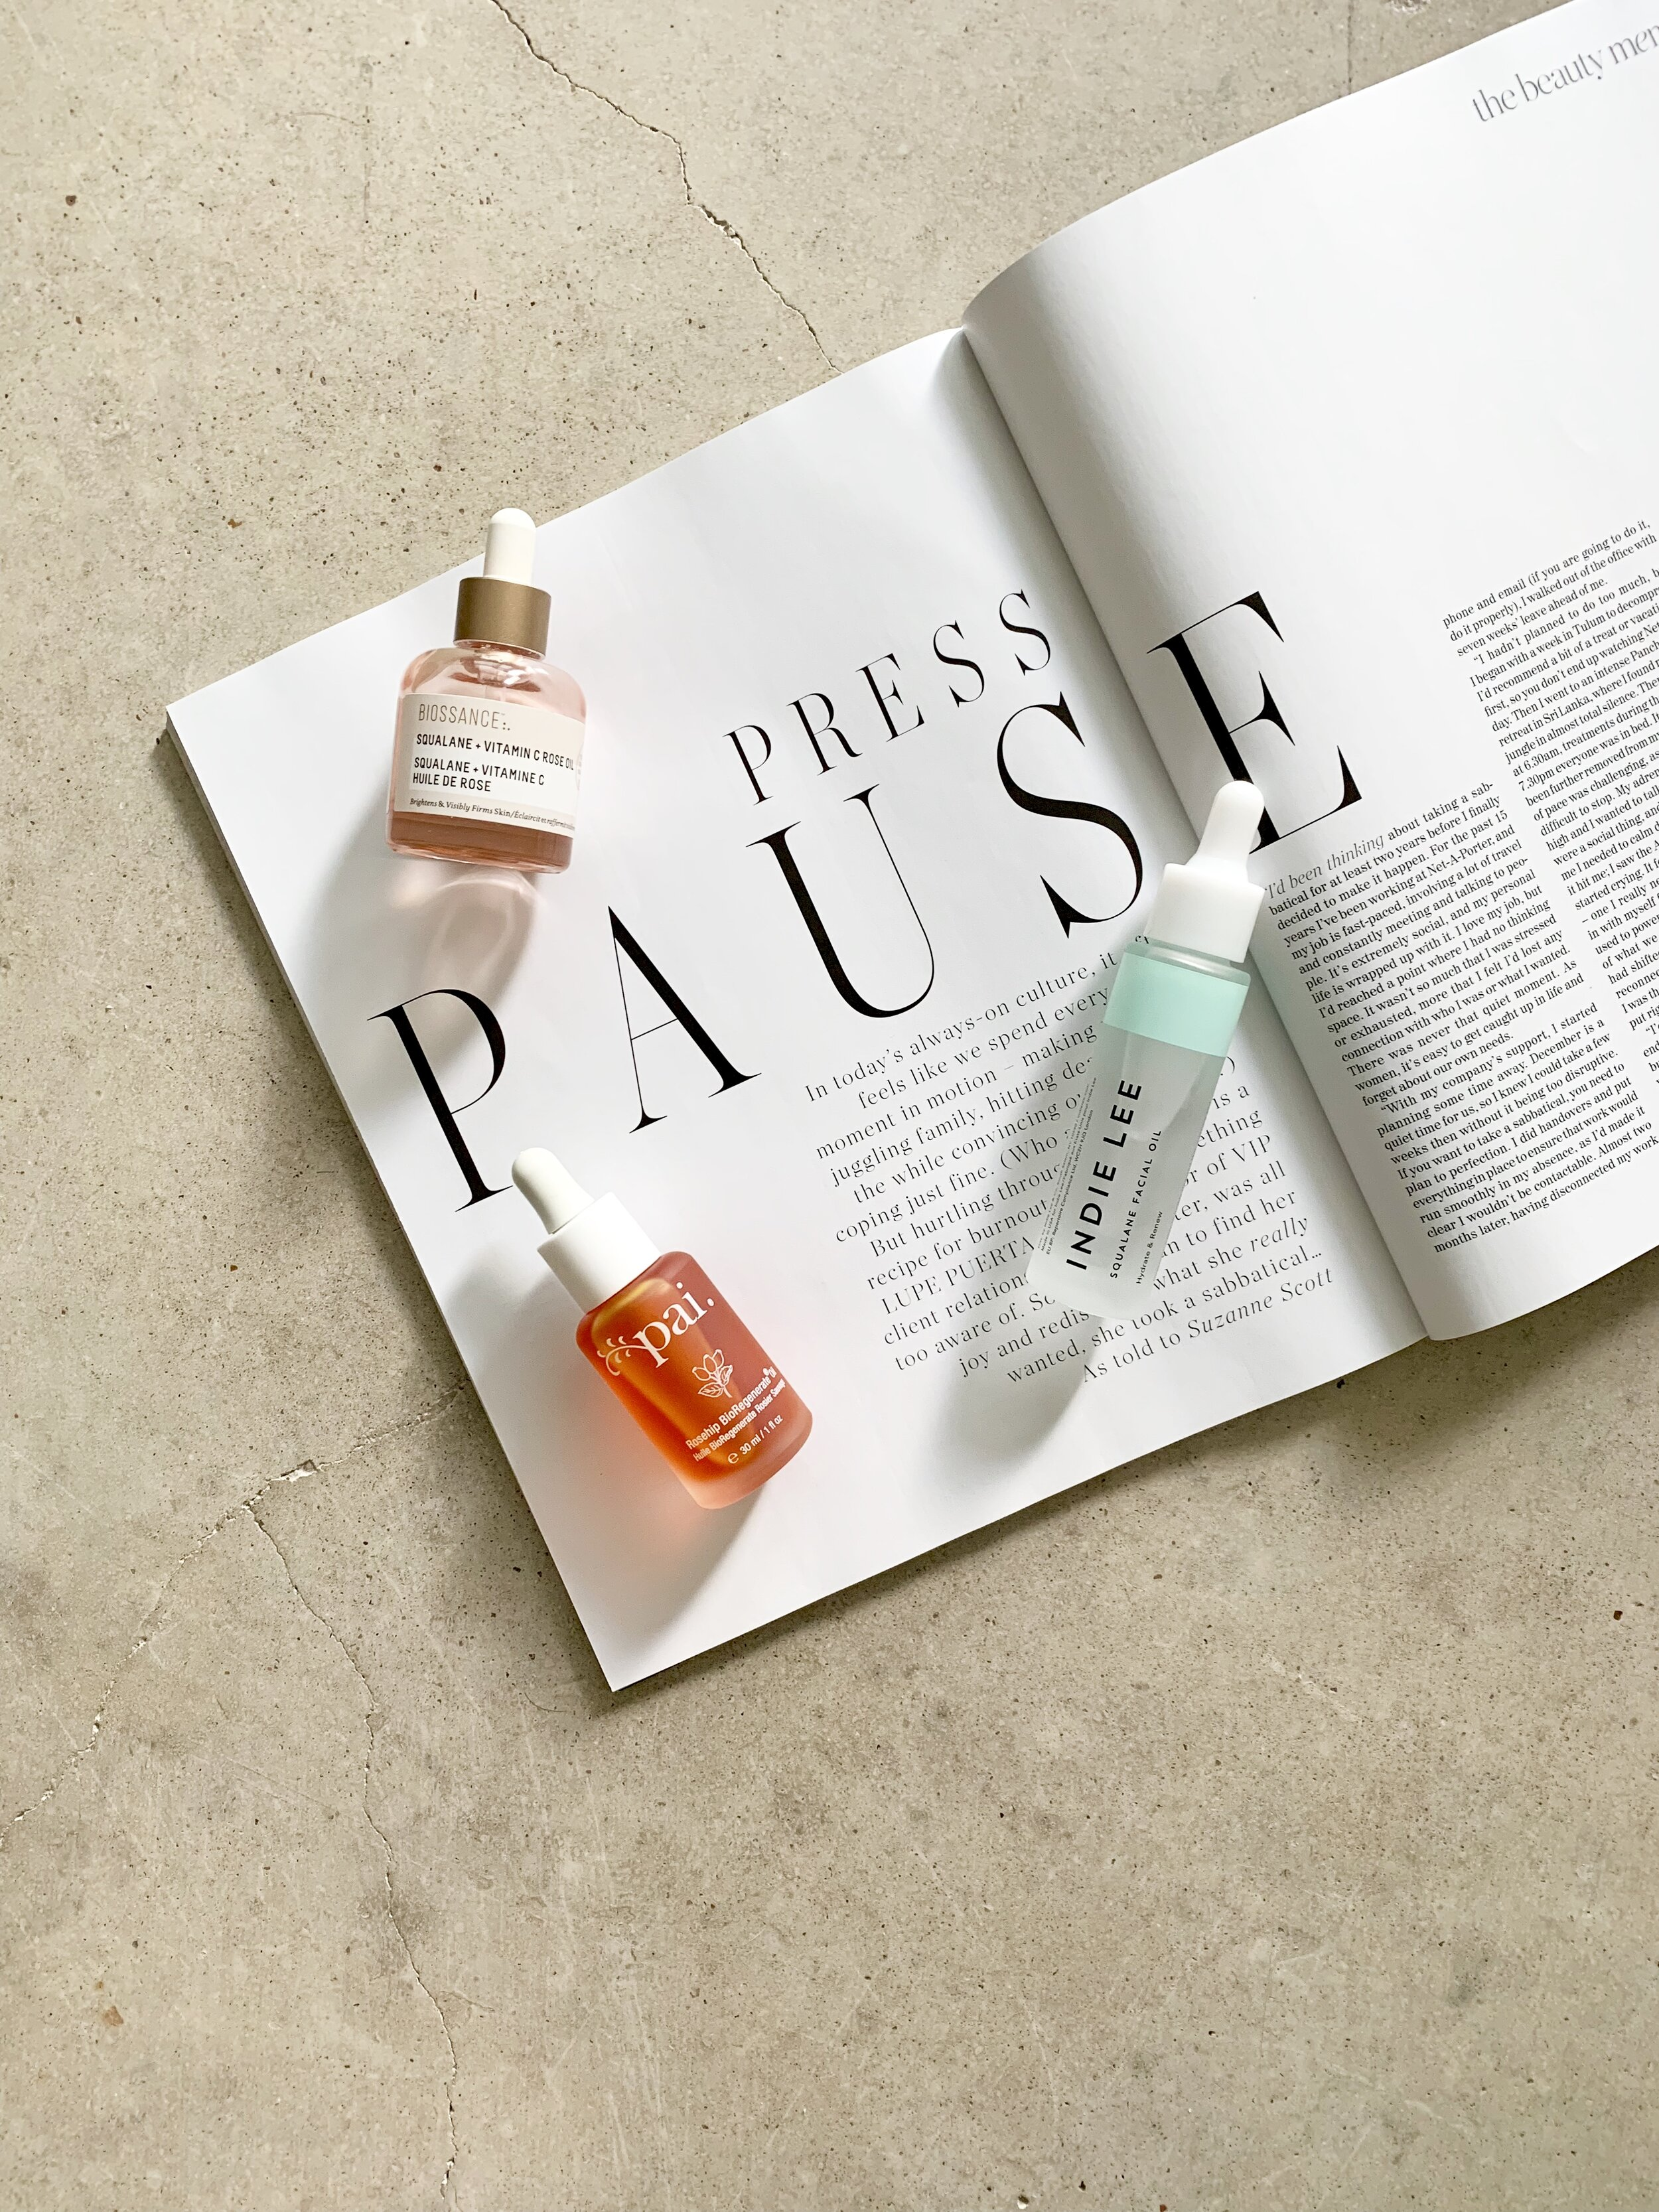 SAVING FACE - Because there is nothing like a good face oil to come to our skin's rescue.